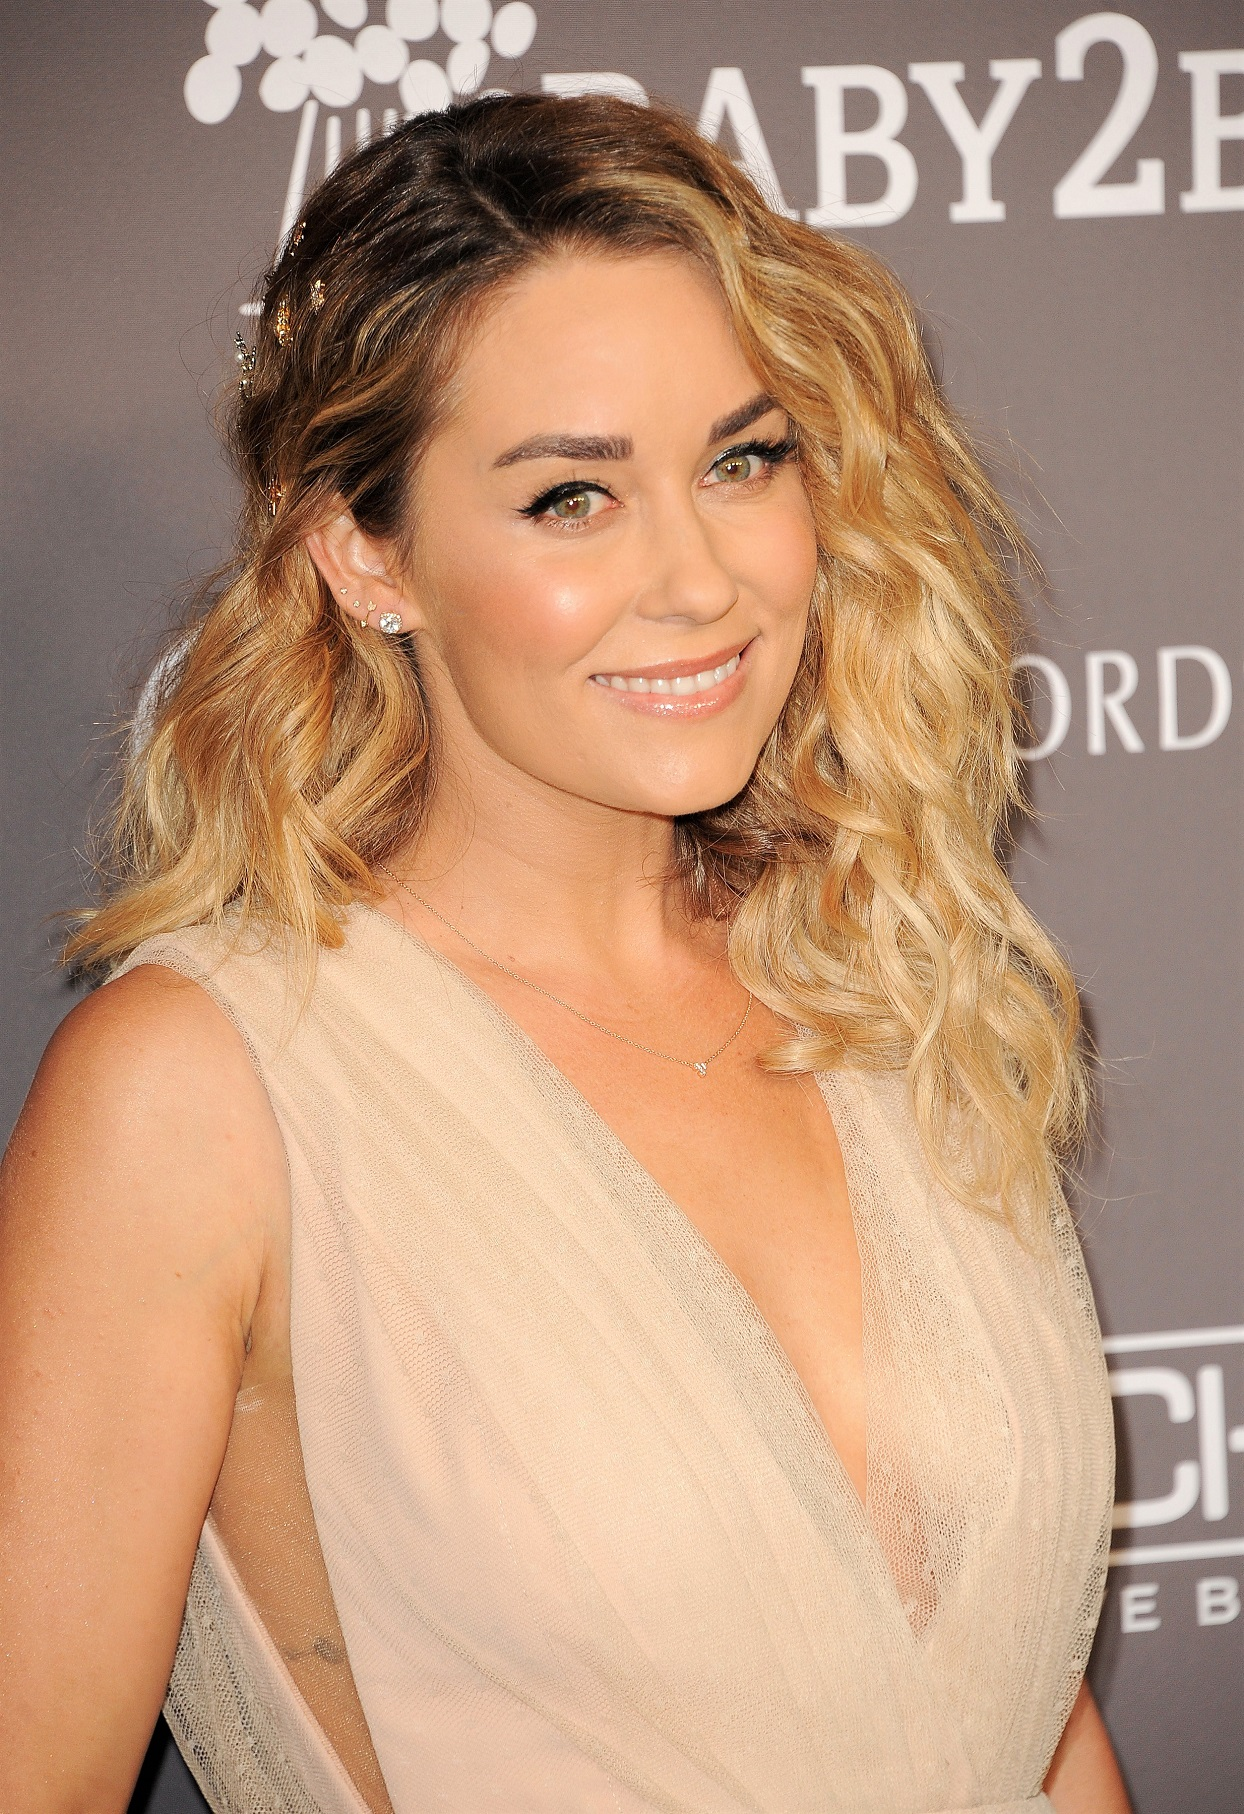 Lauren Conrad Is Pregnant with Her Second Child